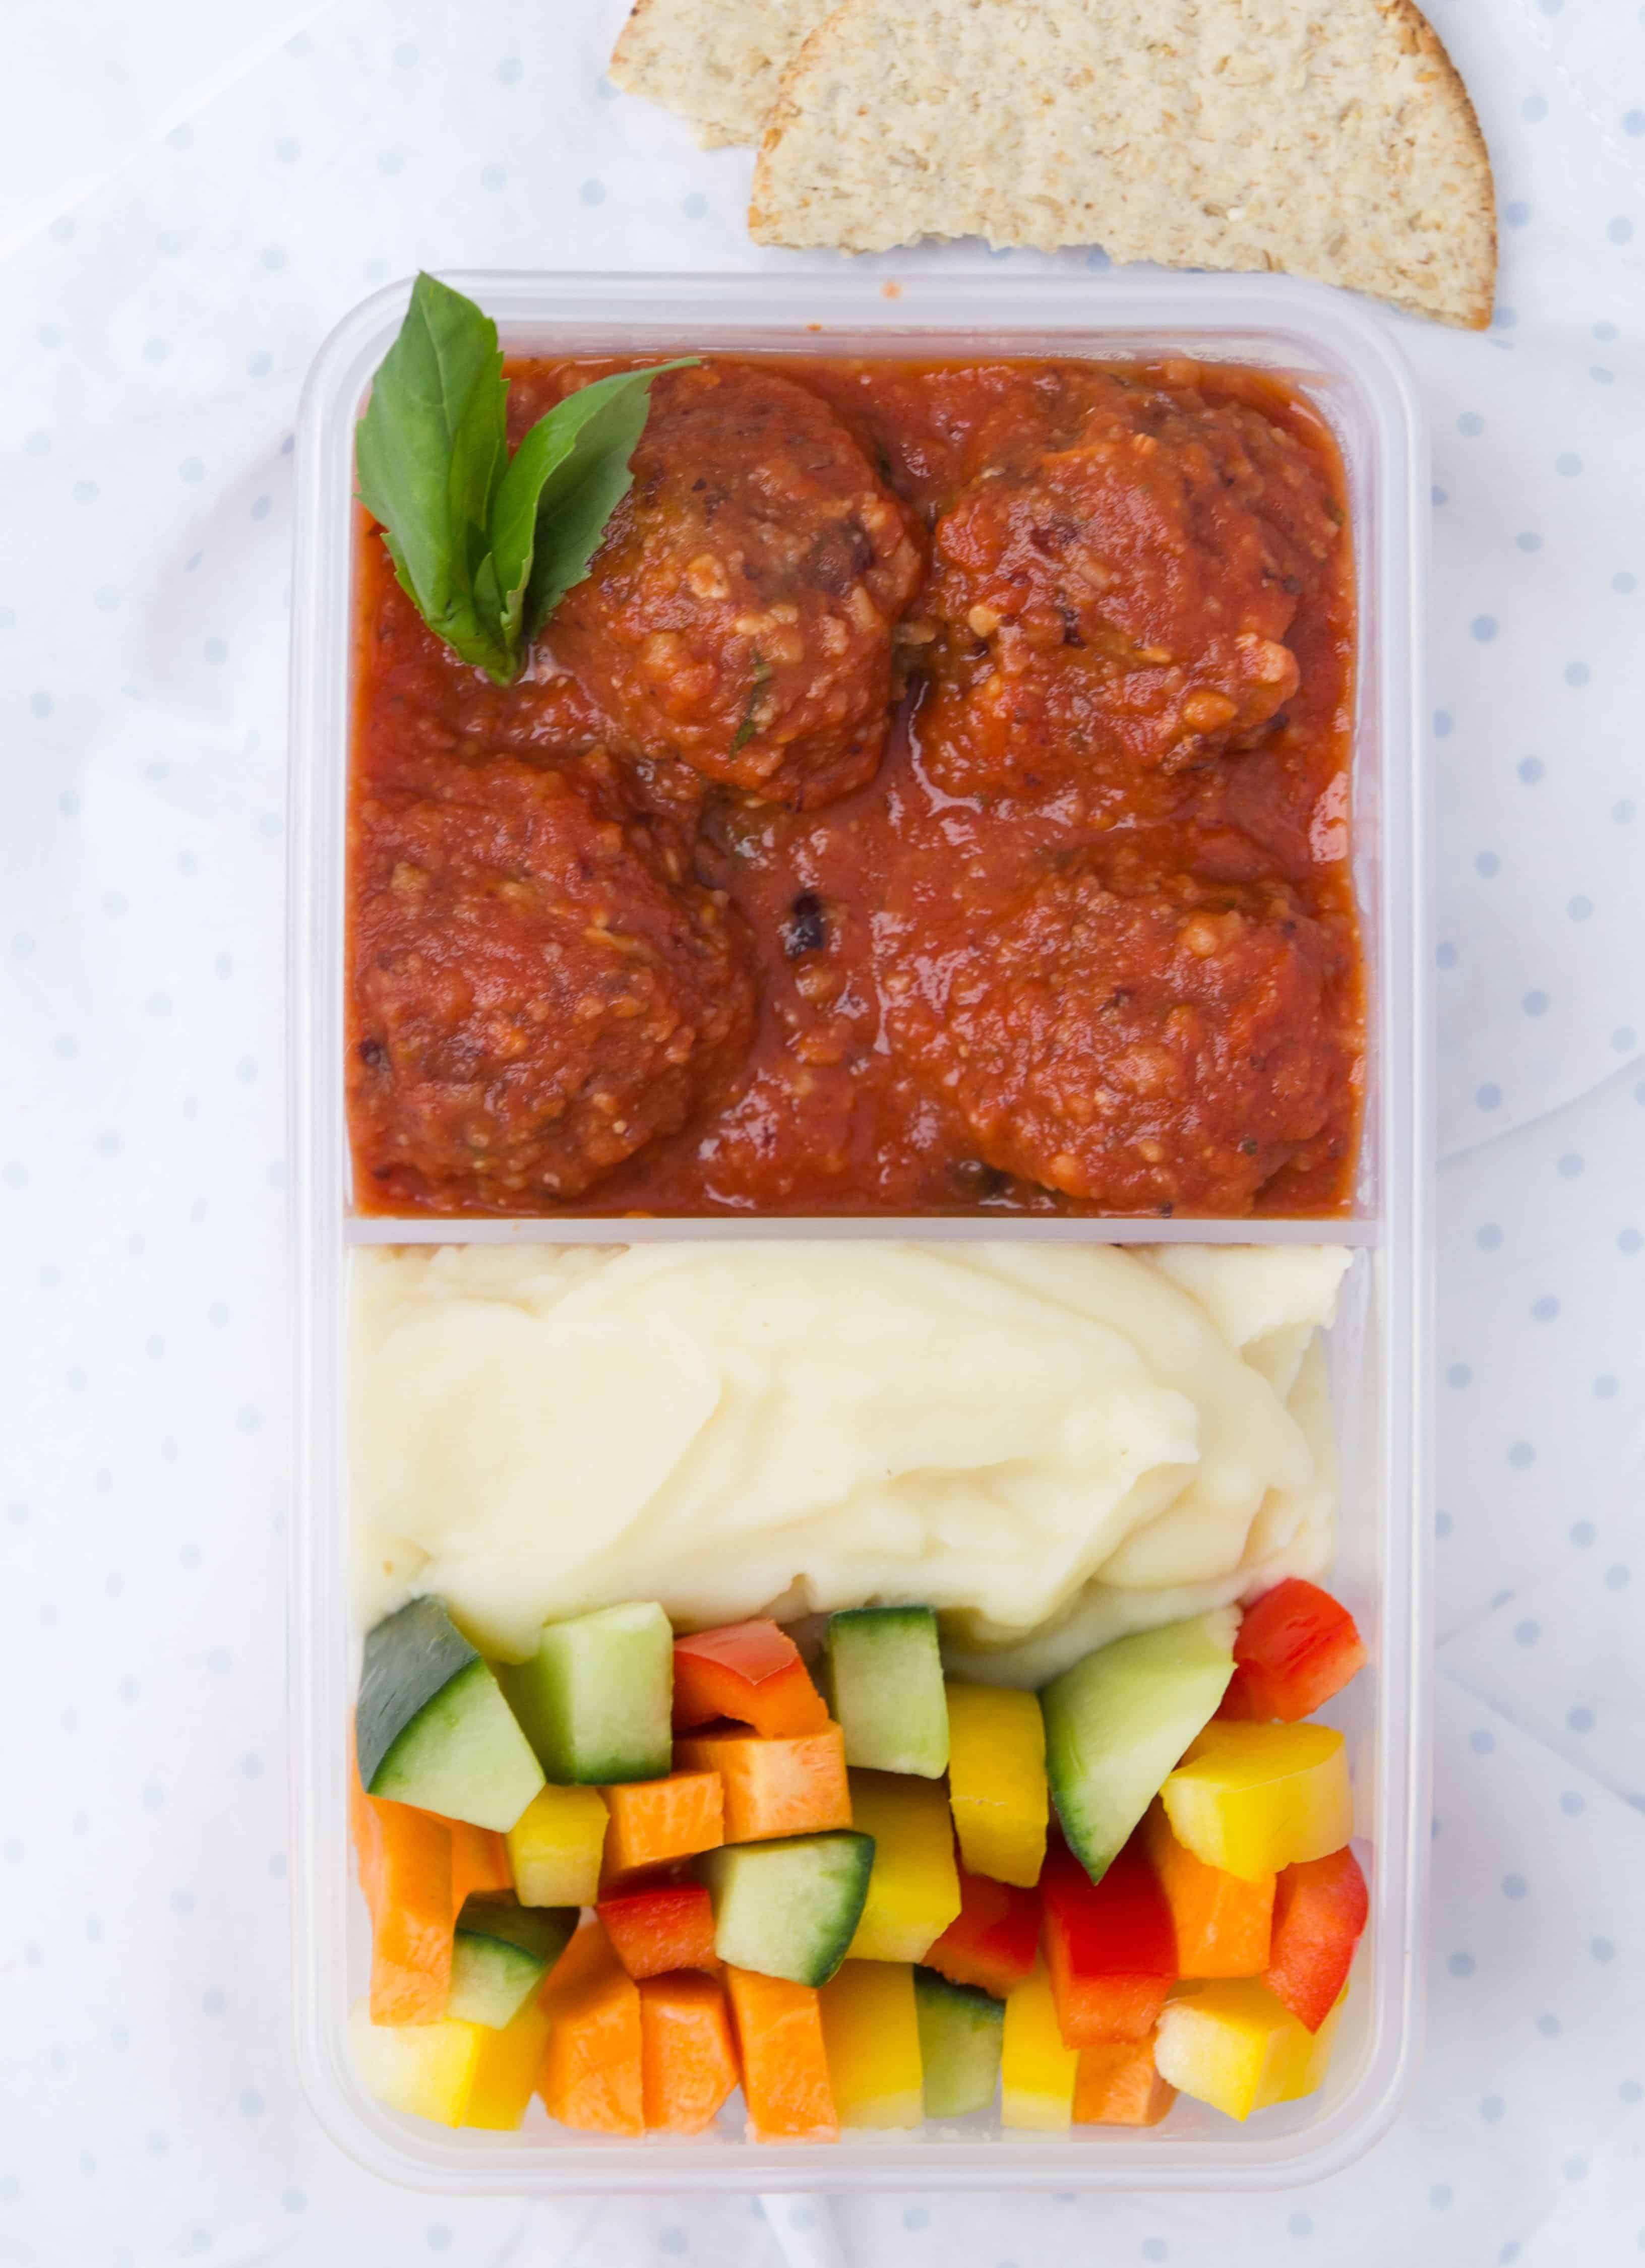 Yummy and healthy lunch box ideas for school. Recipe by The clever meal.